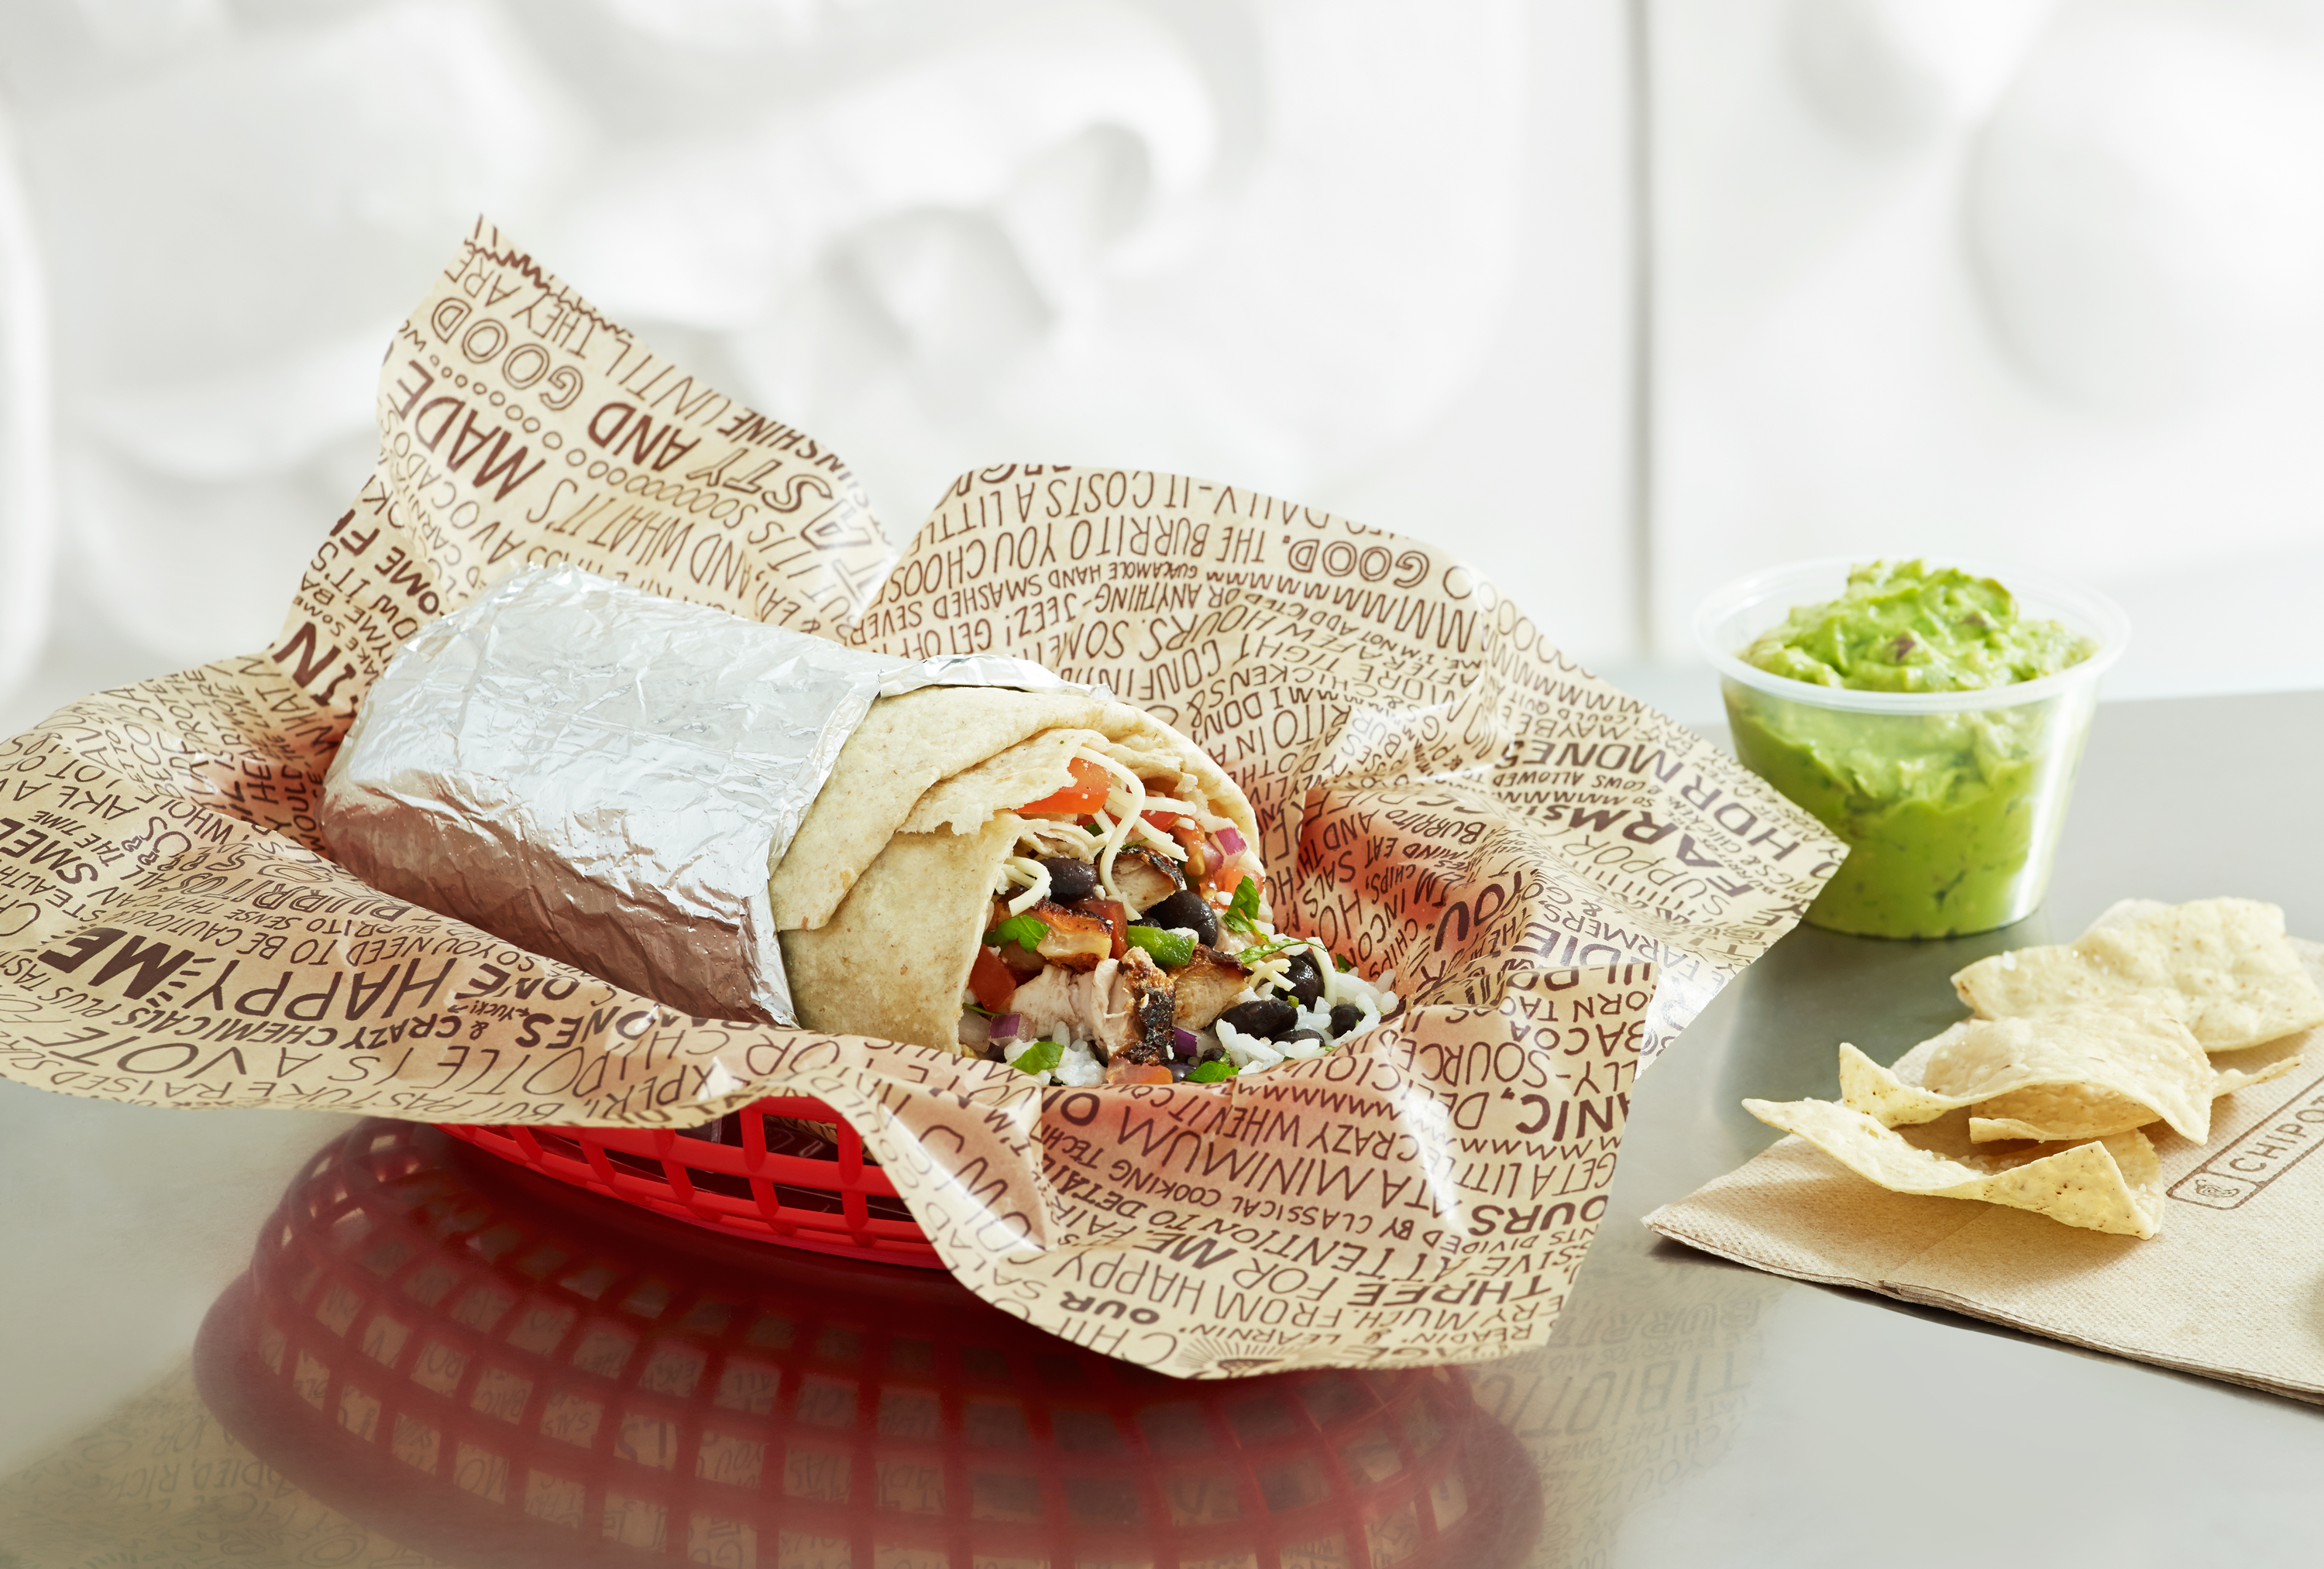 The Future of Chipotle: Bacon, Nachos, and Late-Night Eats